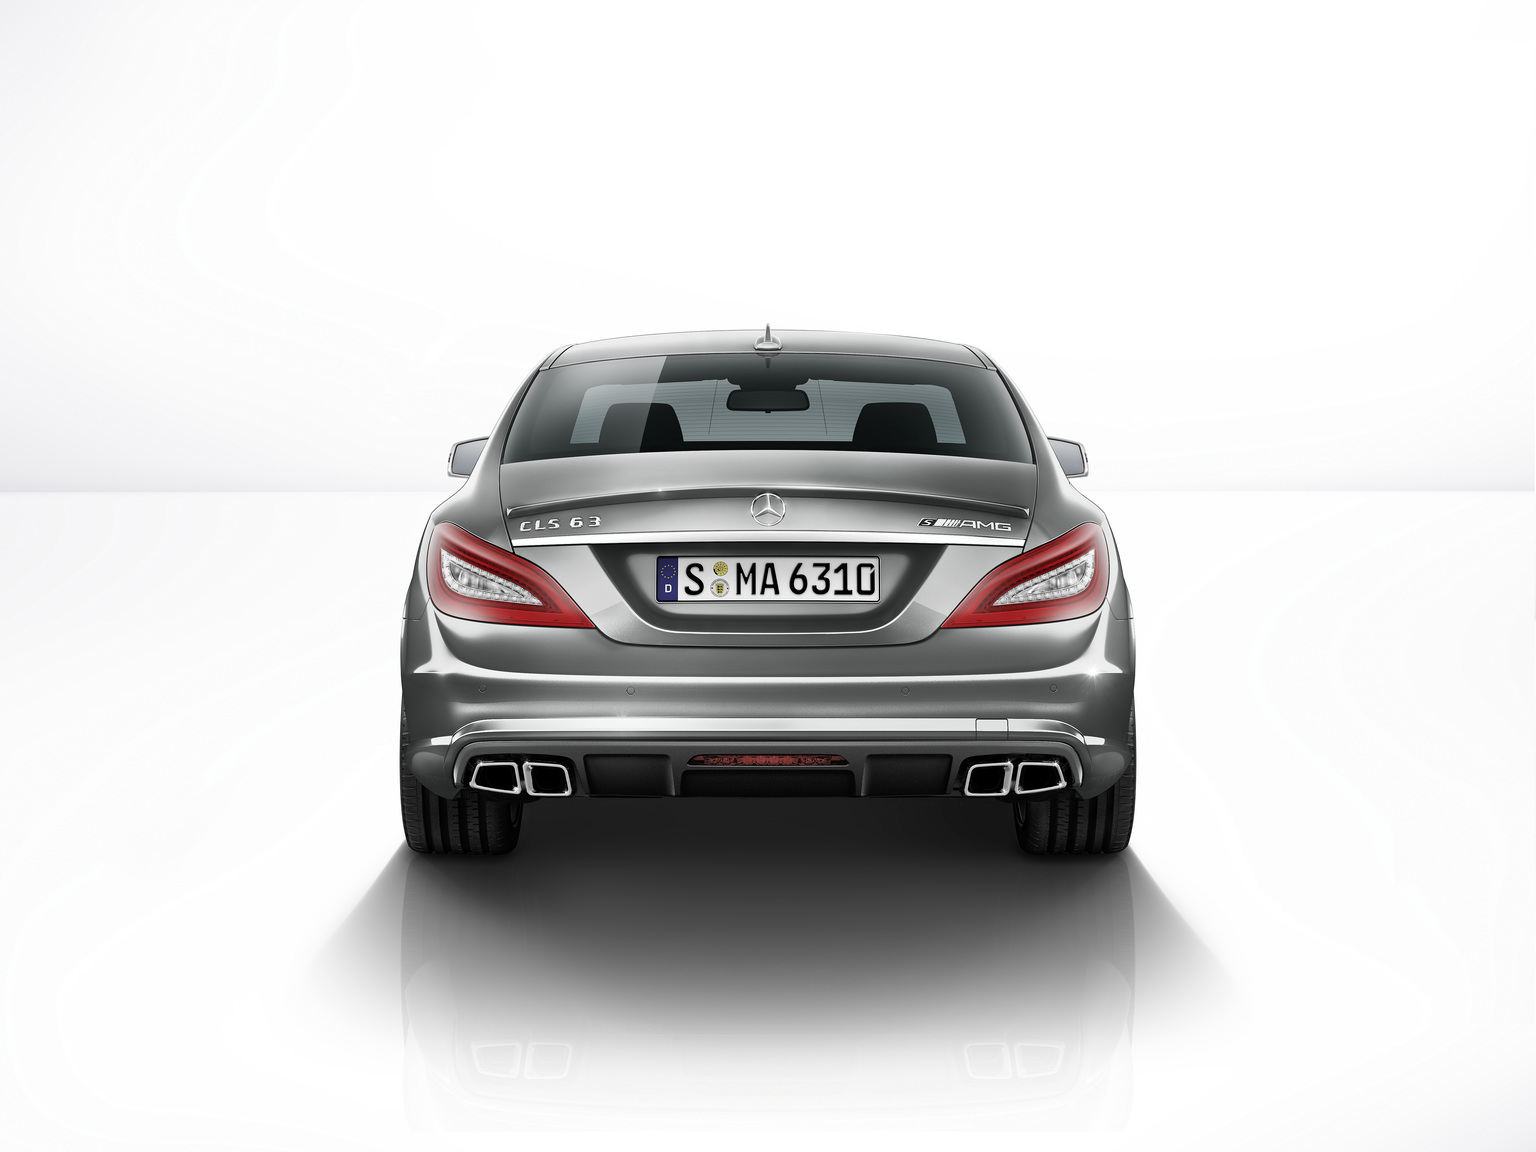 2013 Mercedes Benz Cls 63 Amg 4matic Review